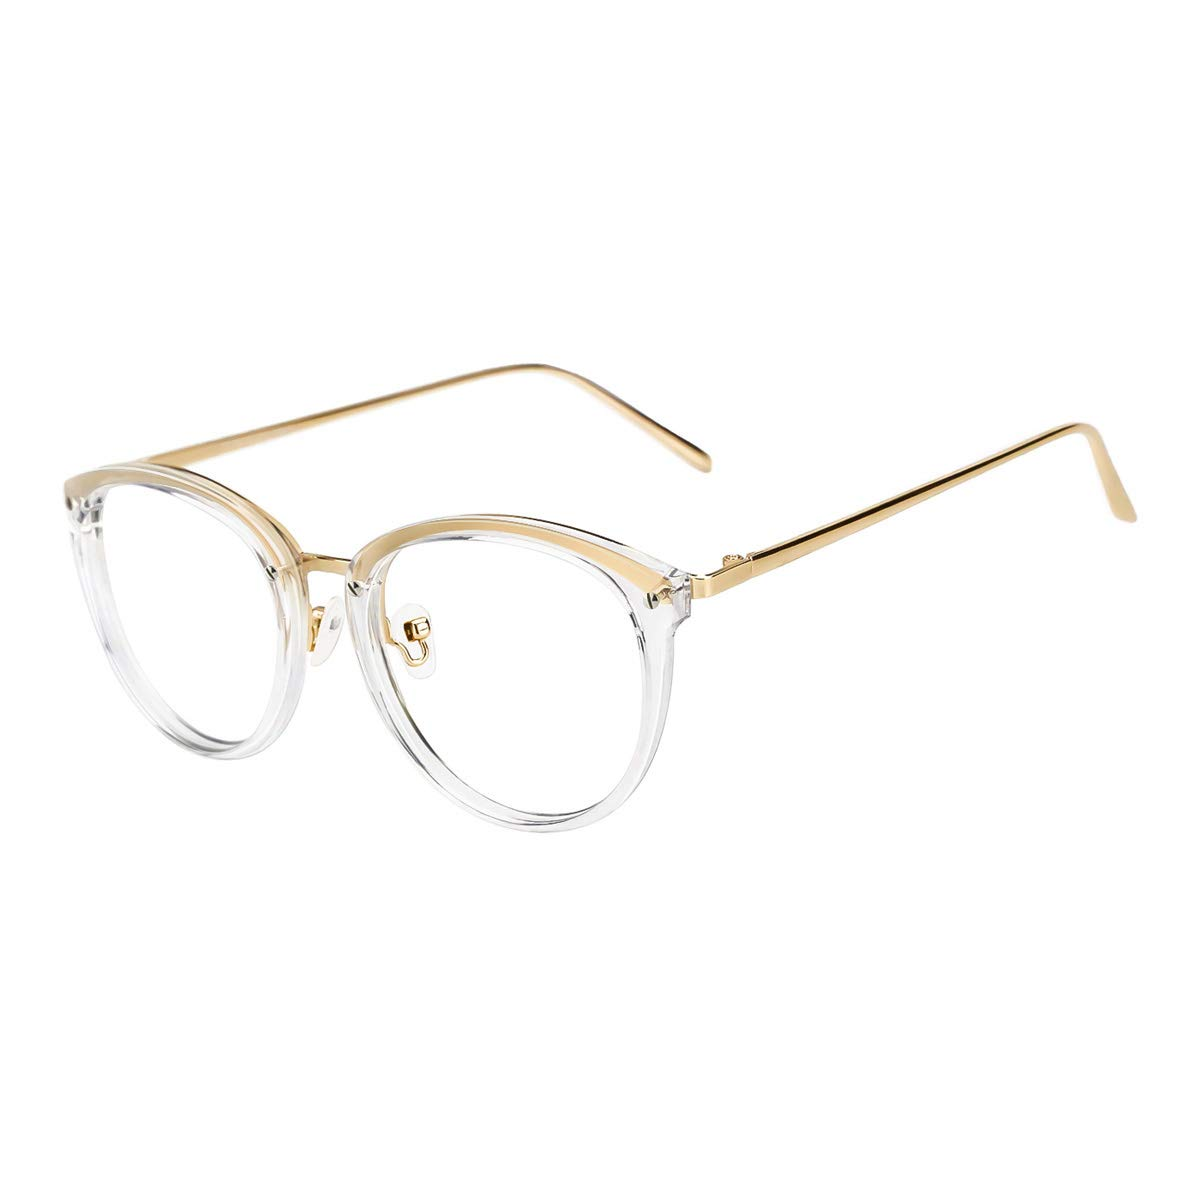 9e529be84d Amazon.com  TIJN Vintage Round Metal Optical Eyewear Non-prescription  Eyeglasses Frame for Women  Shoes